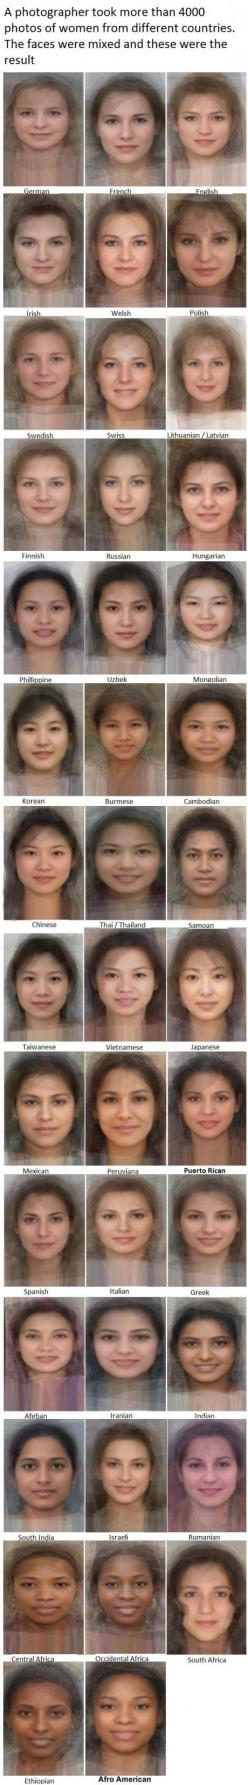 Photographer's Project to Find the Average Face of Women from Each Country...These final portraits are definitely beautiful, the average woman is stunning!: Stuff, Beautiful, Photographer, Photos Of Women, Random, Average Woman, Things, Average Faces, Cou